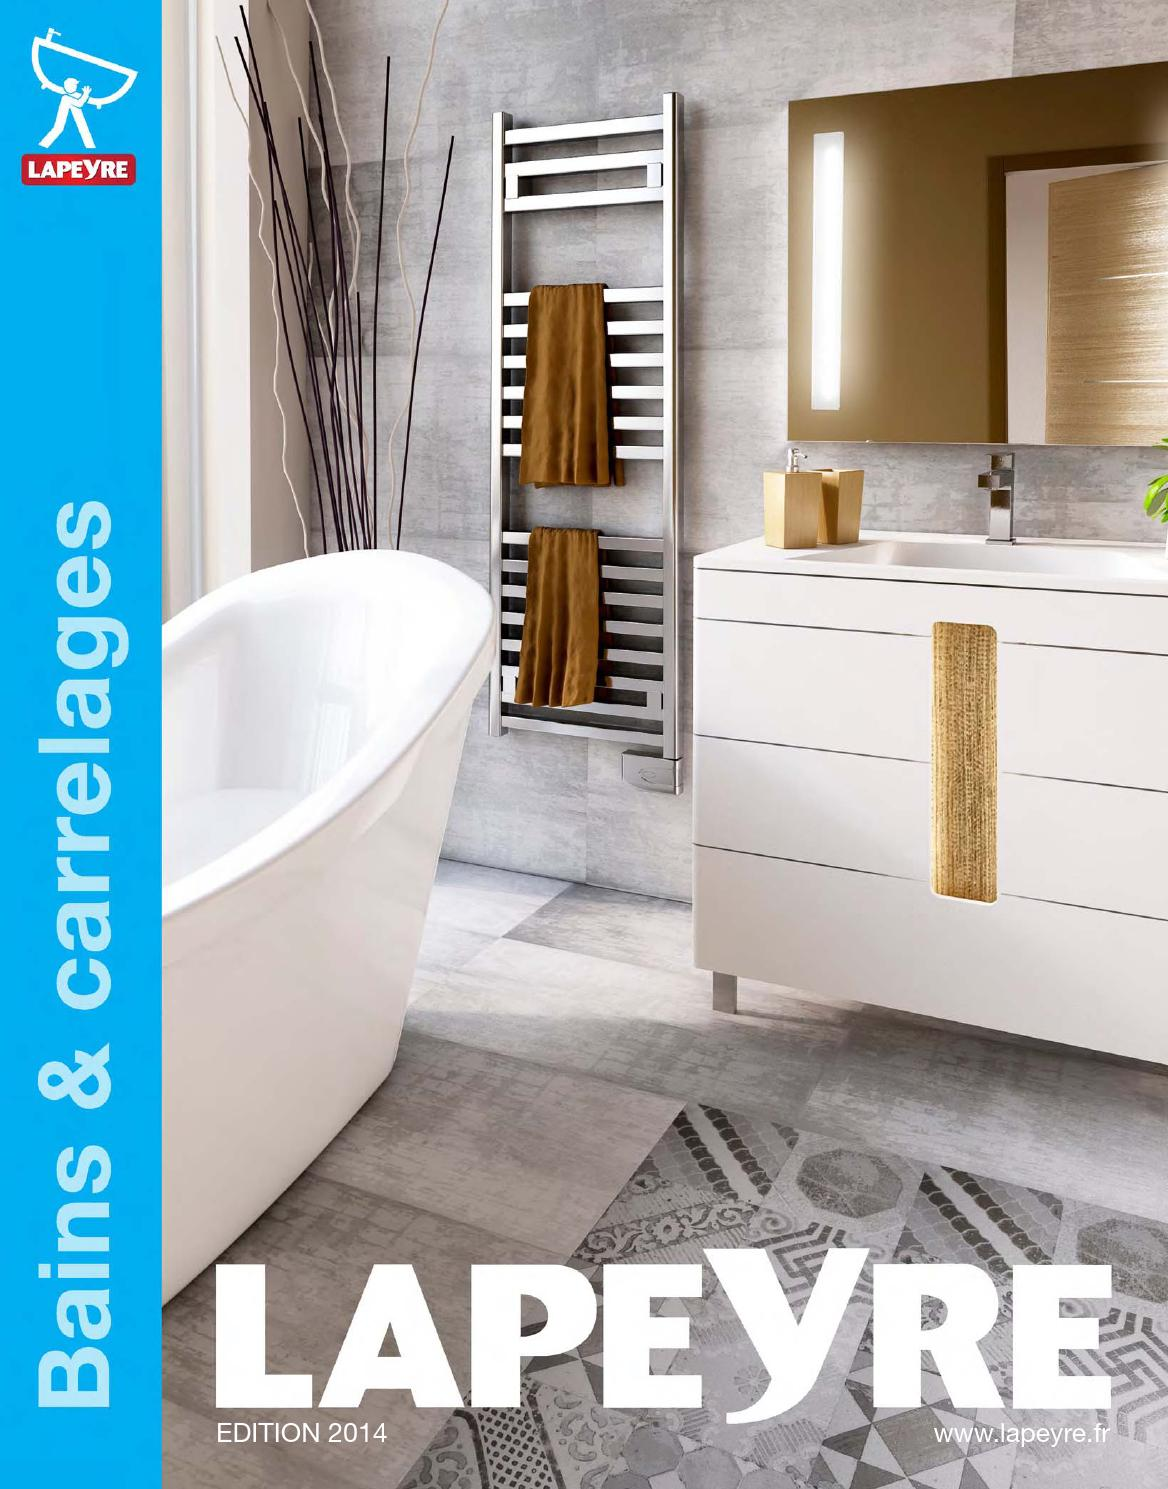 Catalogue Lapeyre Bains Amp Carrelages 2014 By Joe Monroe